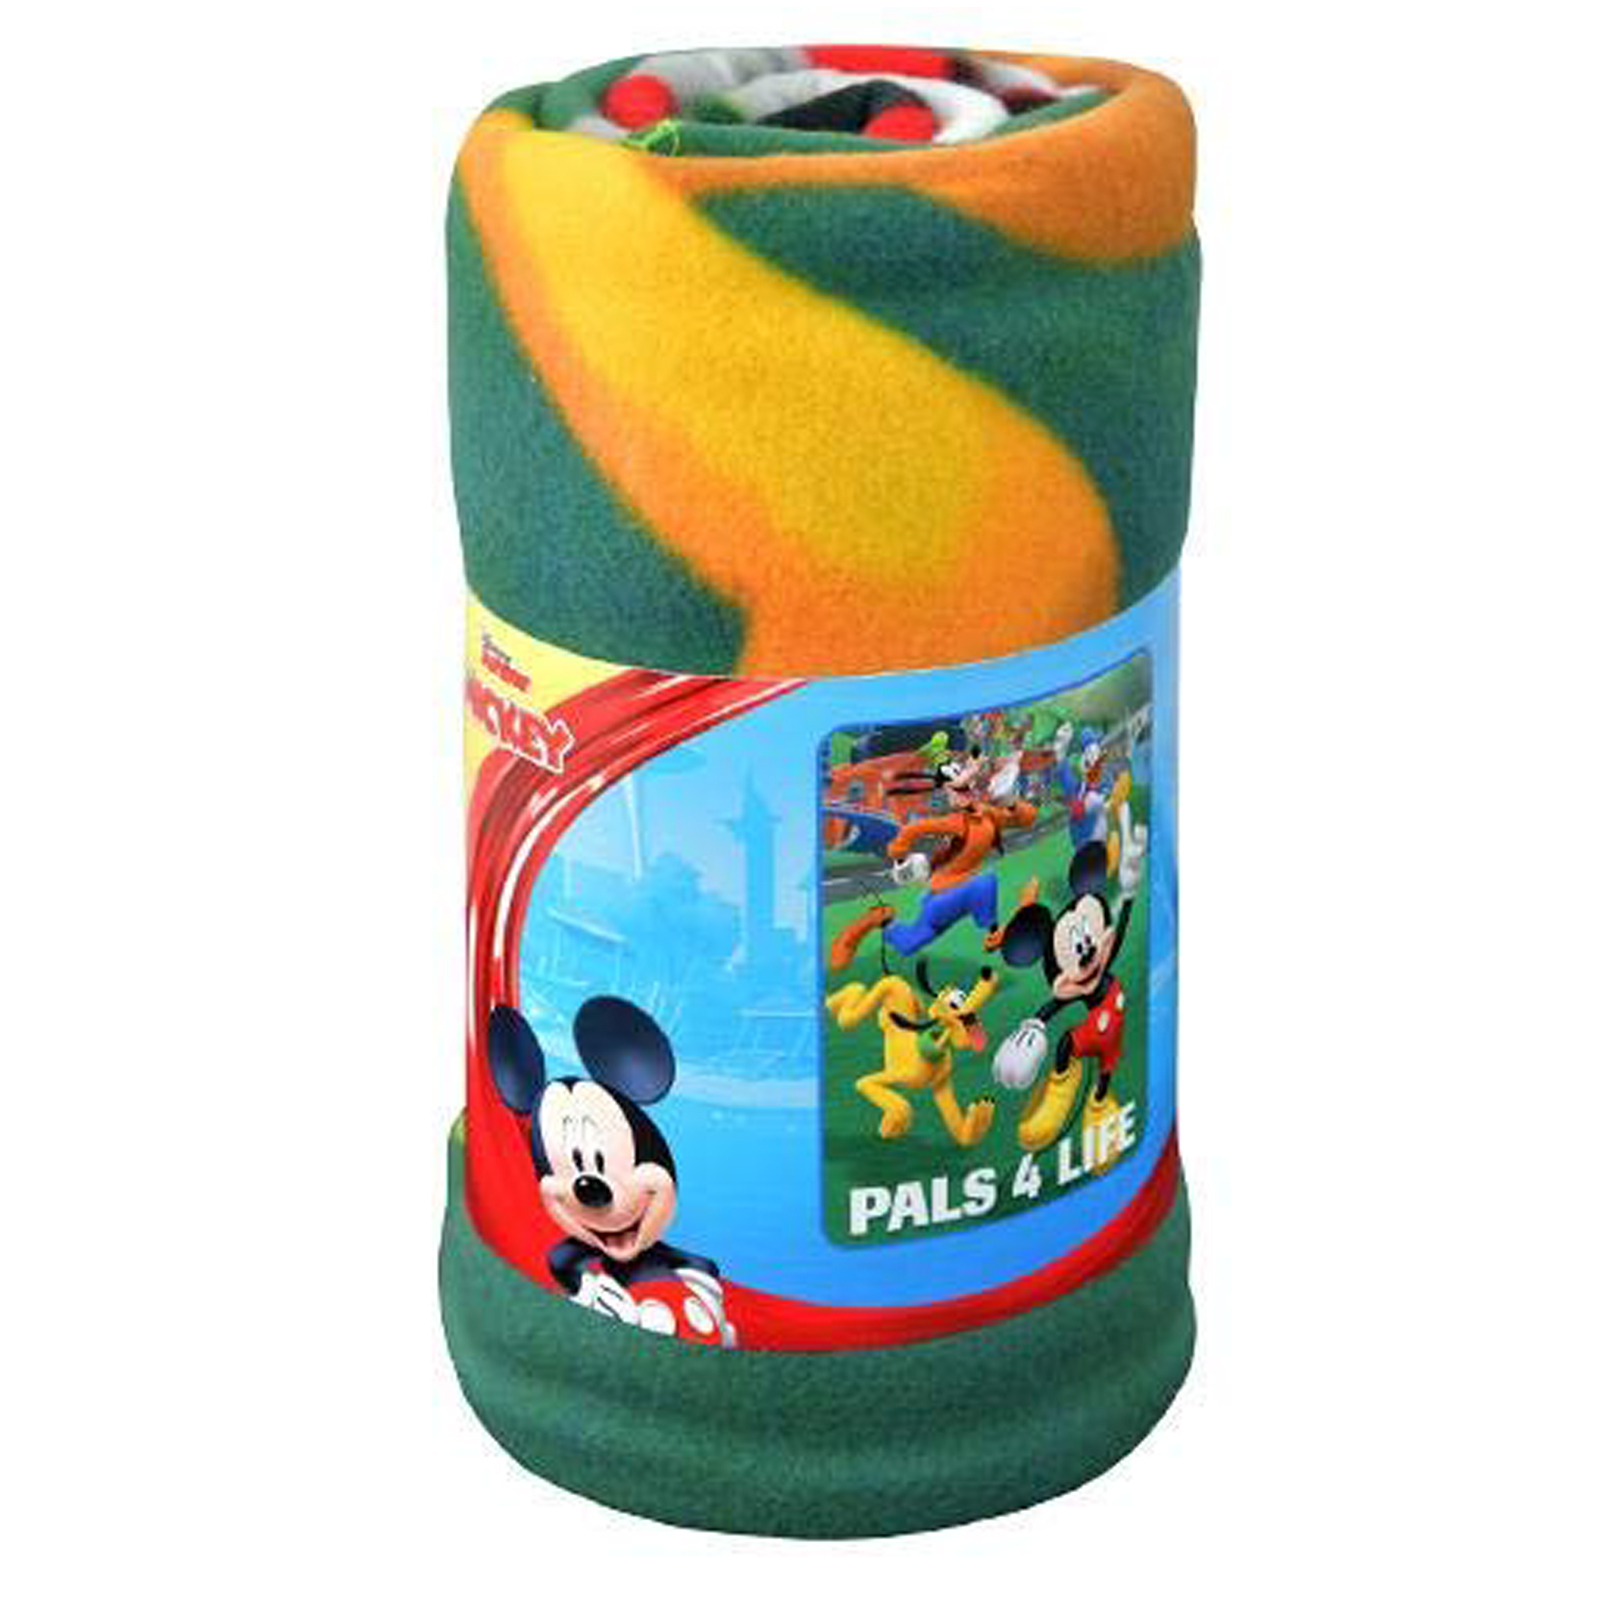 Mickey Mouse and Roadsters Fleece Throw Blanket Kids Home Decor 45 x 60 Inch